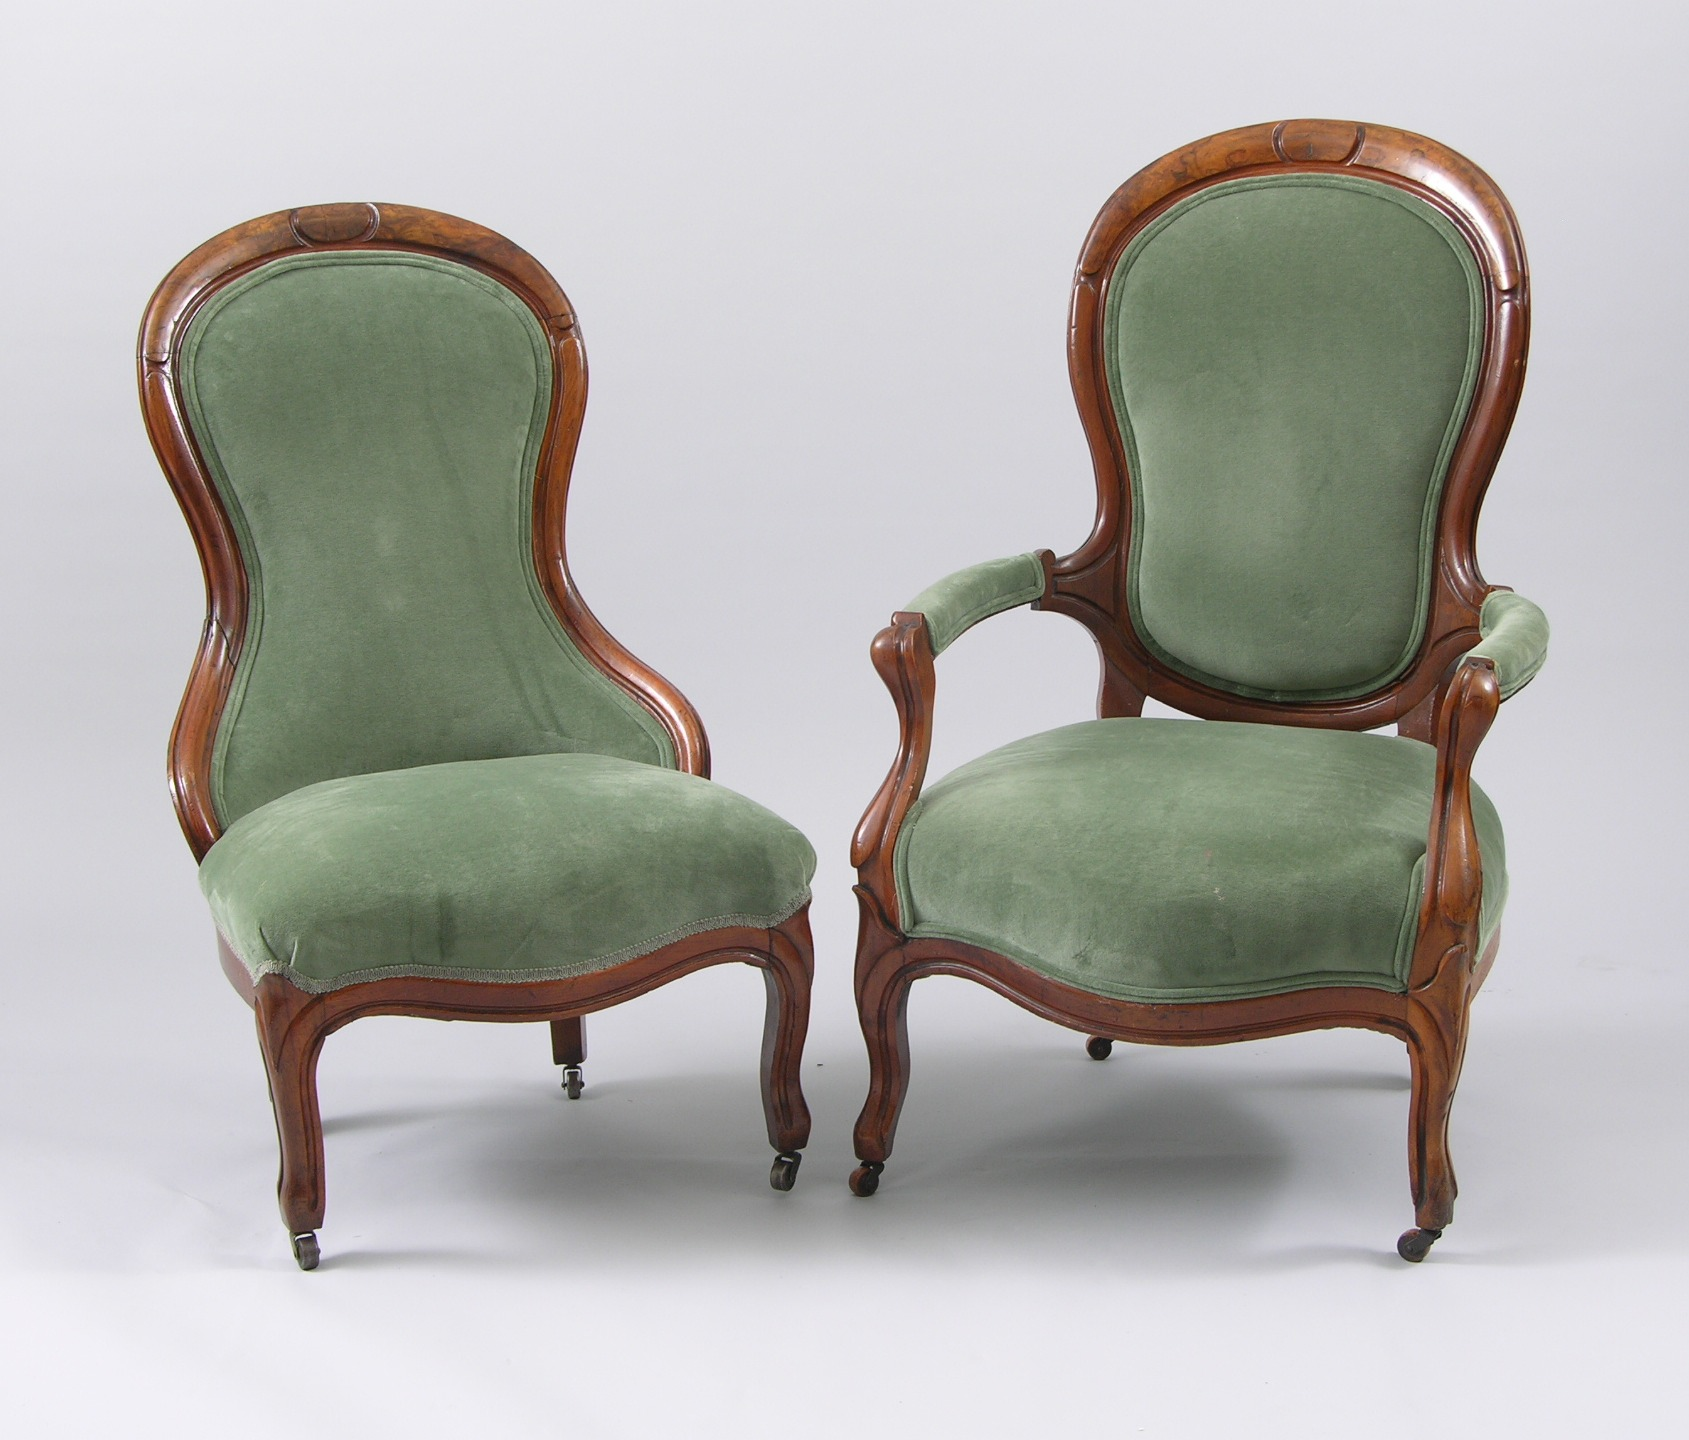 A Pair Of Victorian Balloon Back Mr. U0026 Mrs. Chairs